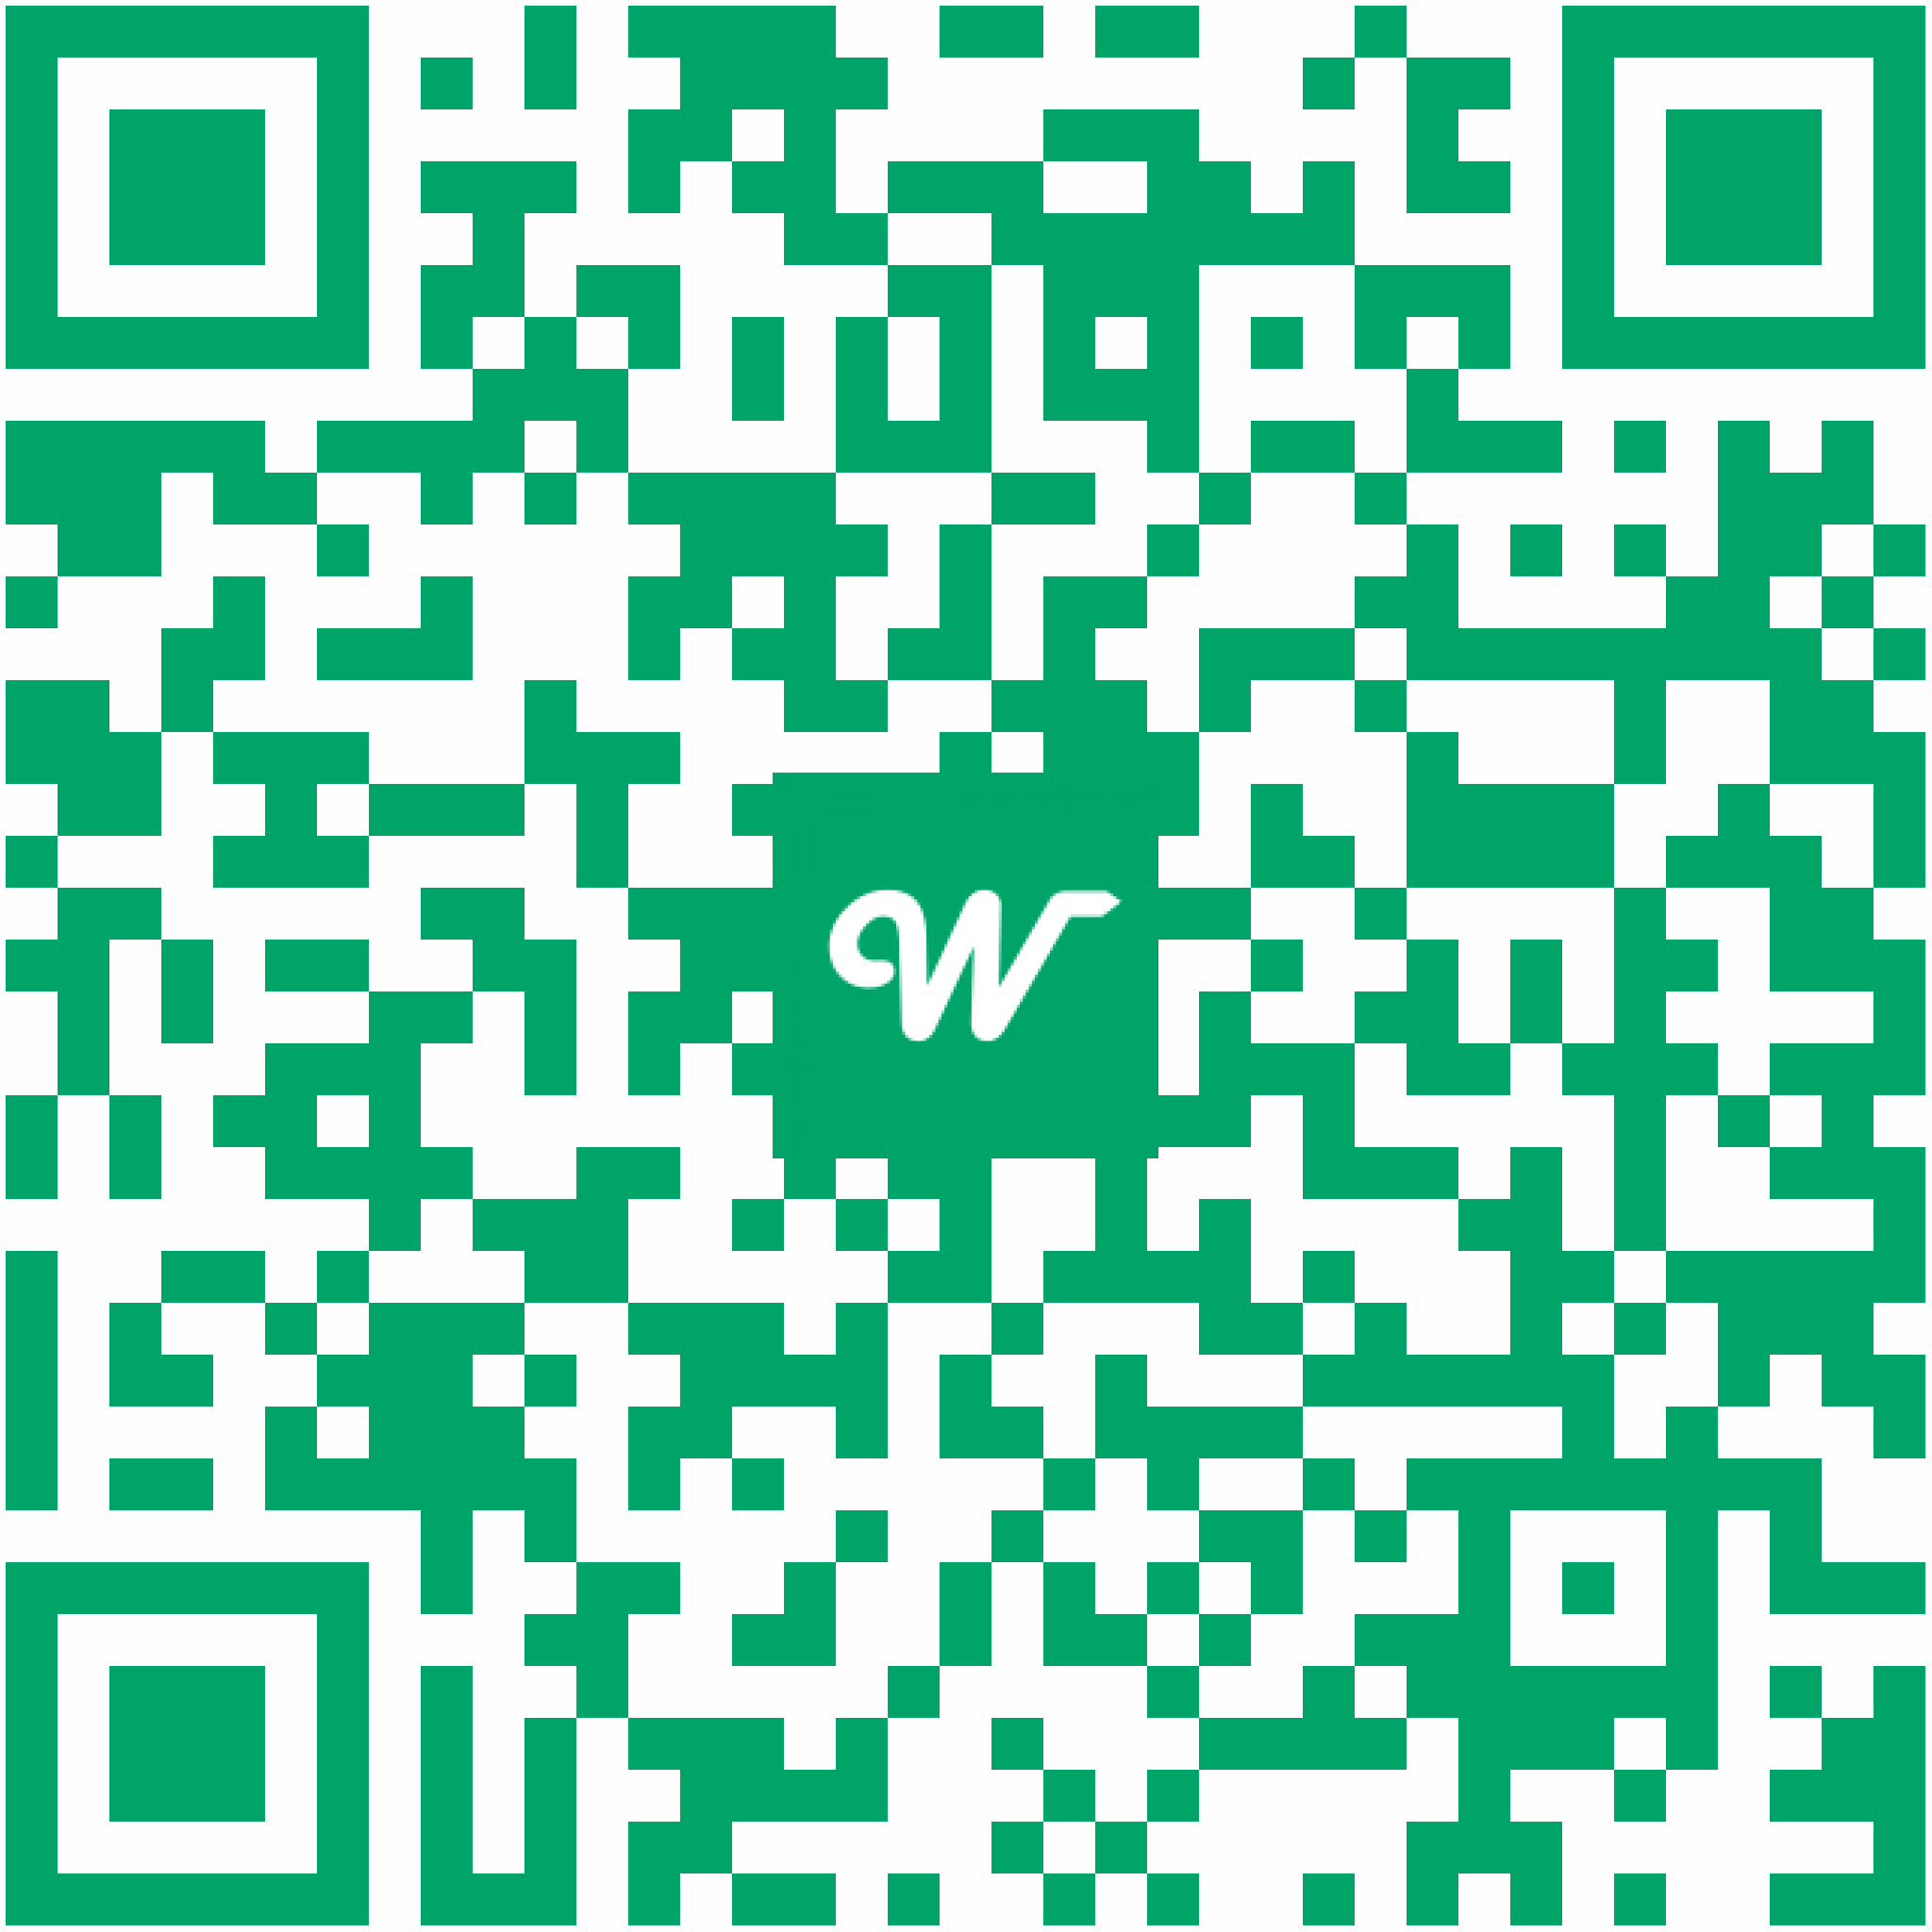 Printable QR code for Sun Inns Hotel 1 Puchong